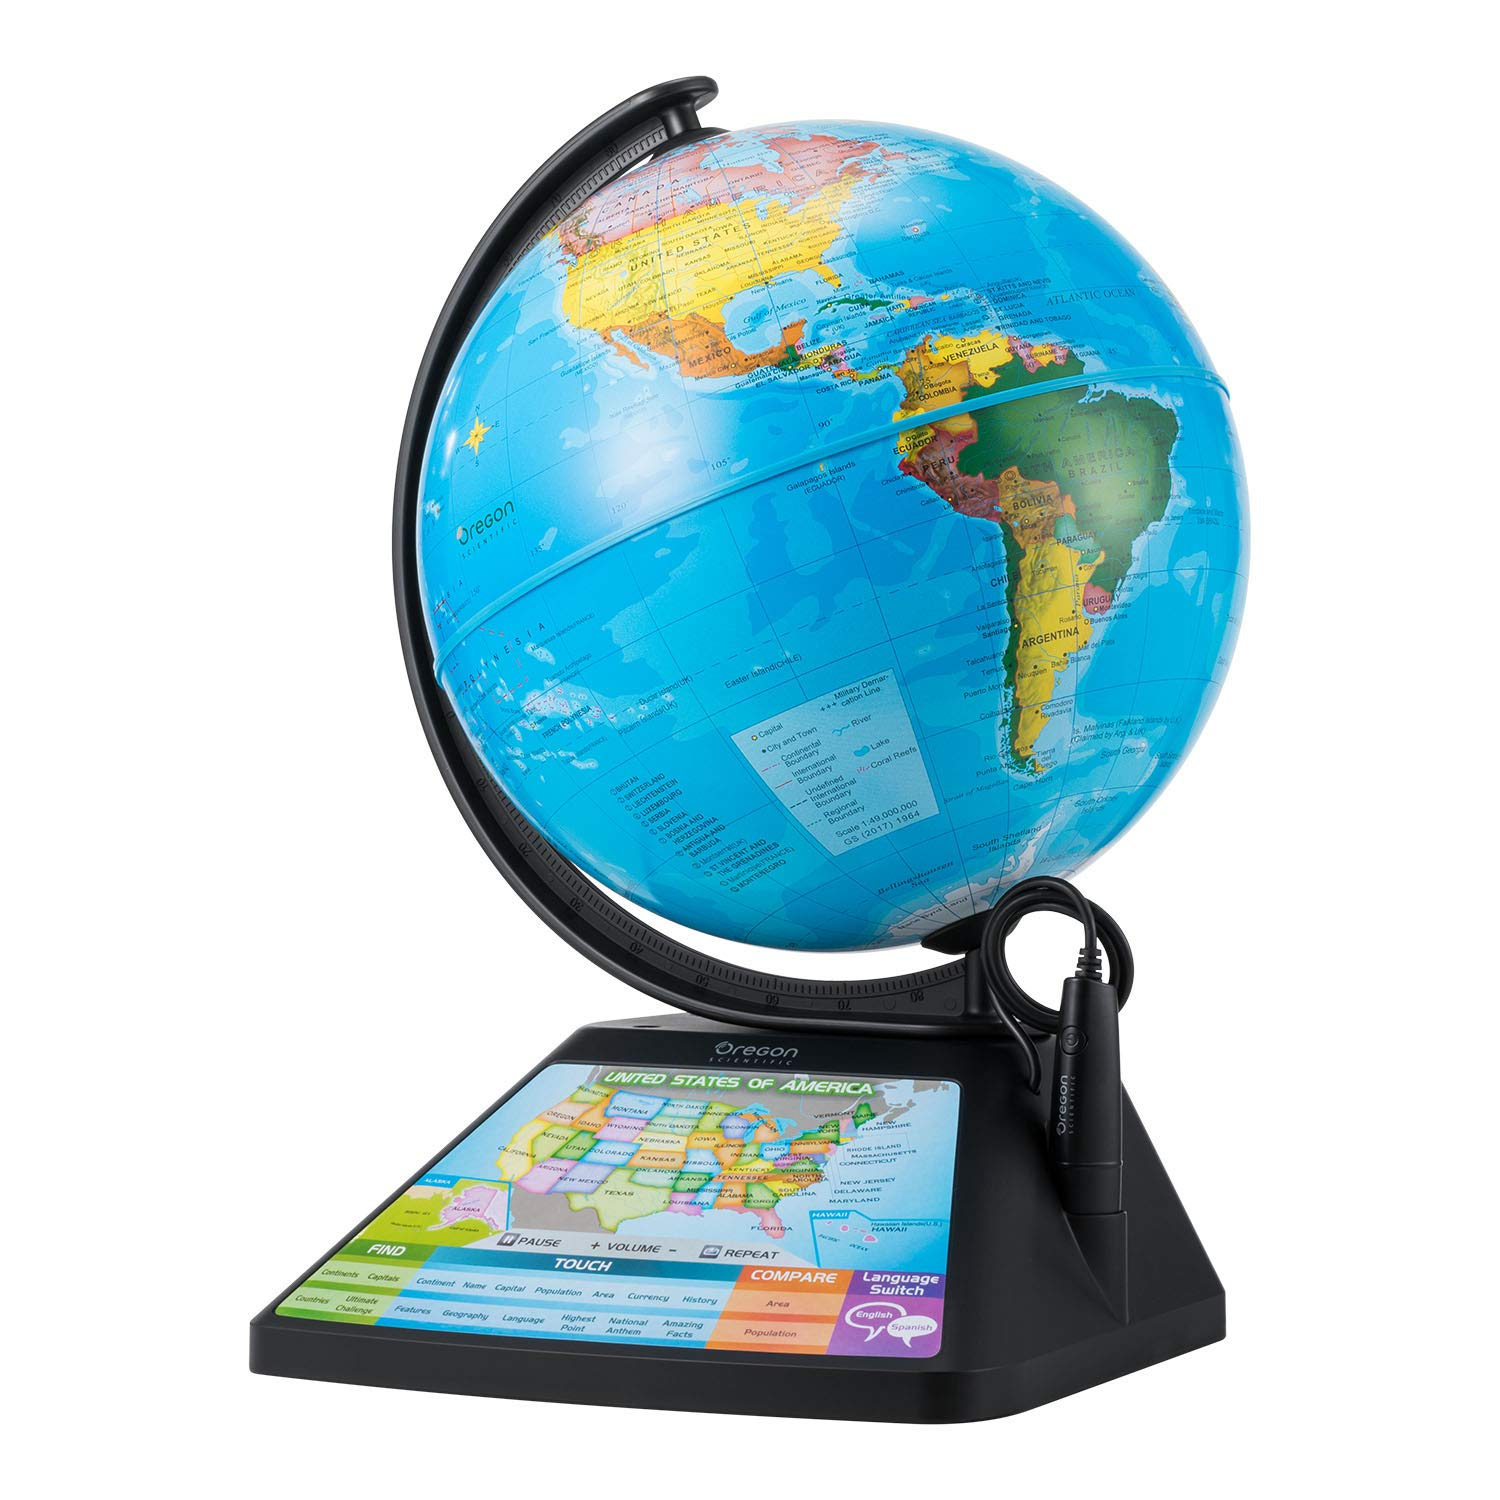 Oregon Scientific Smart Globe Adventure 2.0 Augmented Reality (Stem Approved) World Geography, Fun Educational Games (English Or Spanish) SG268RK SG268R